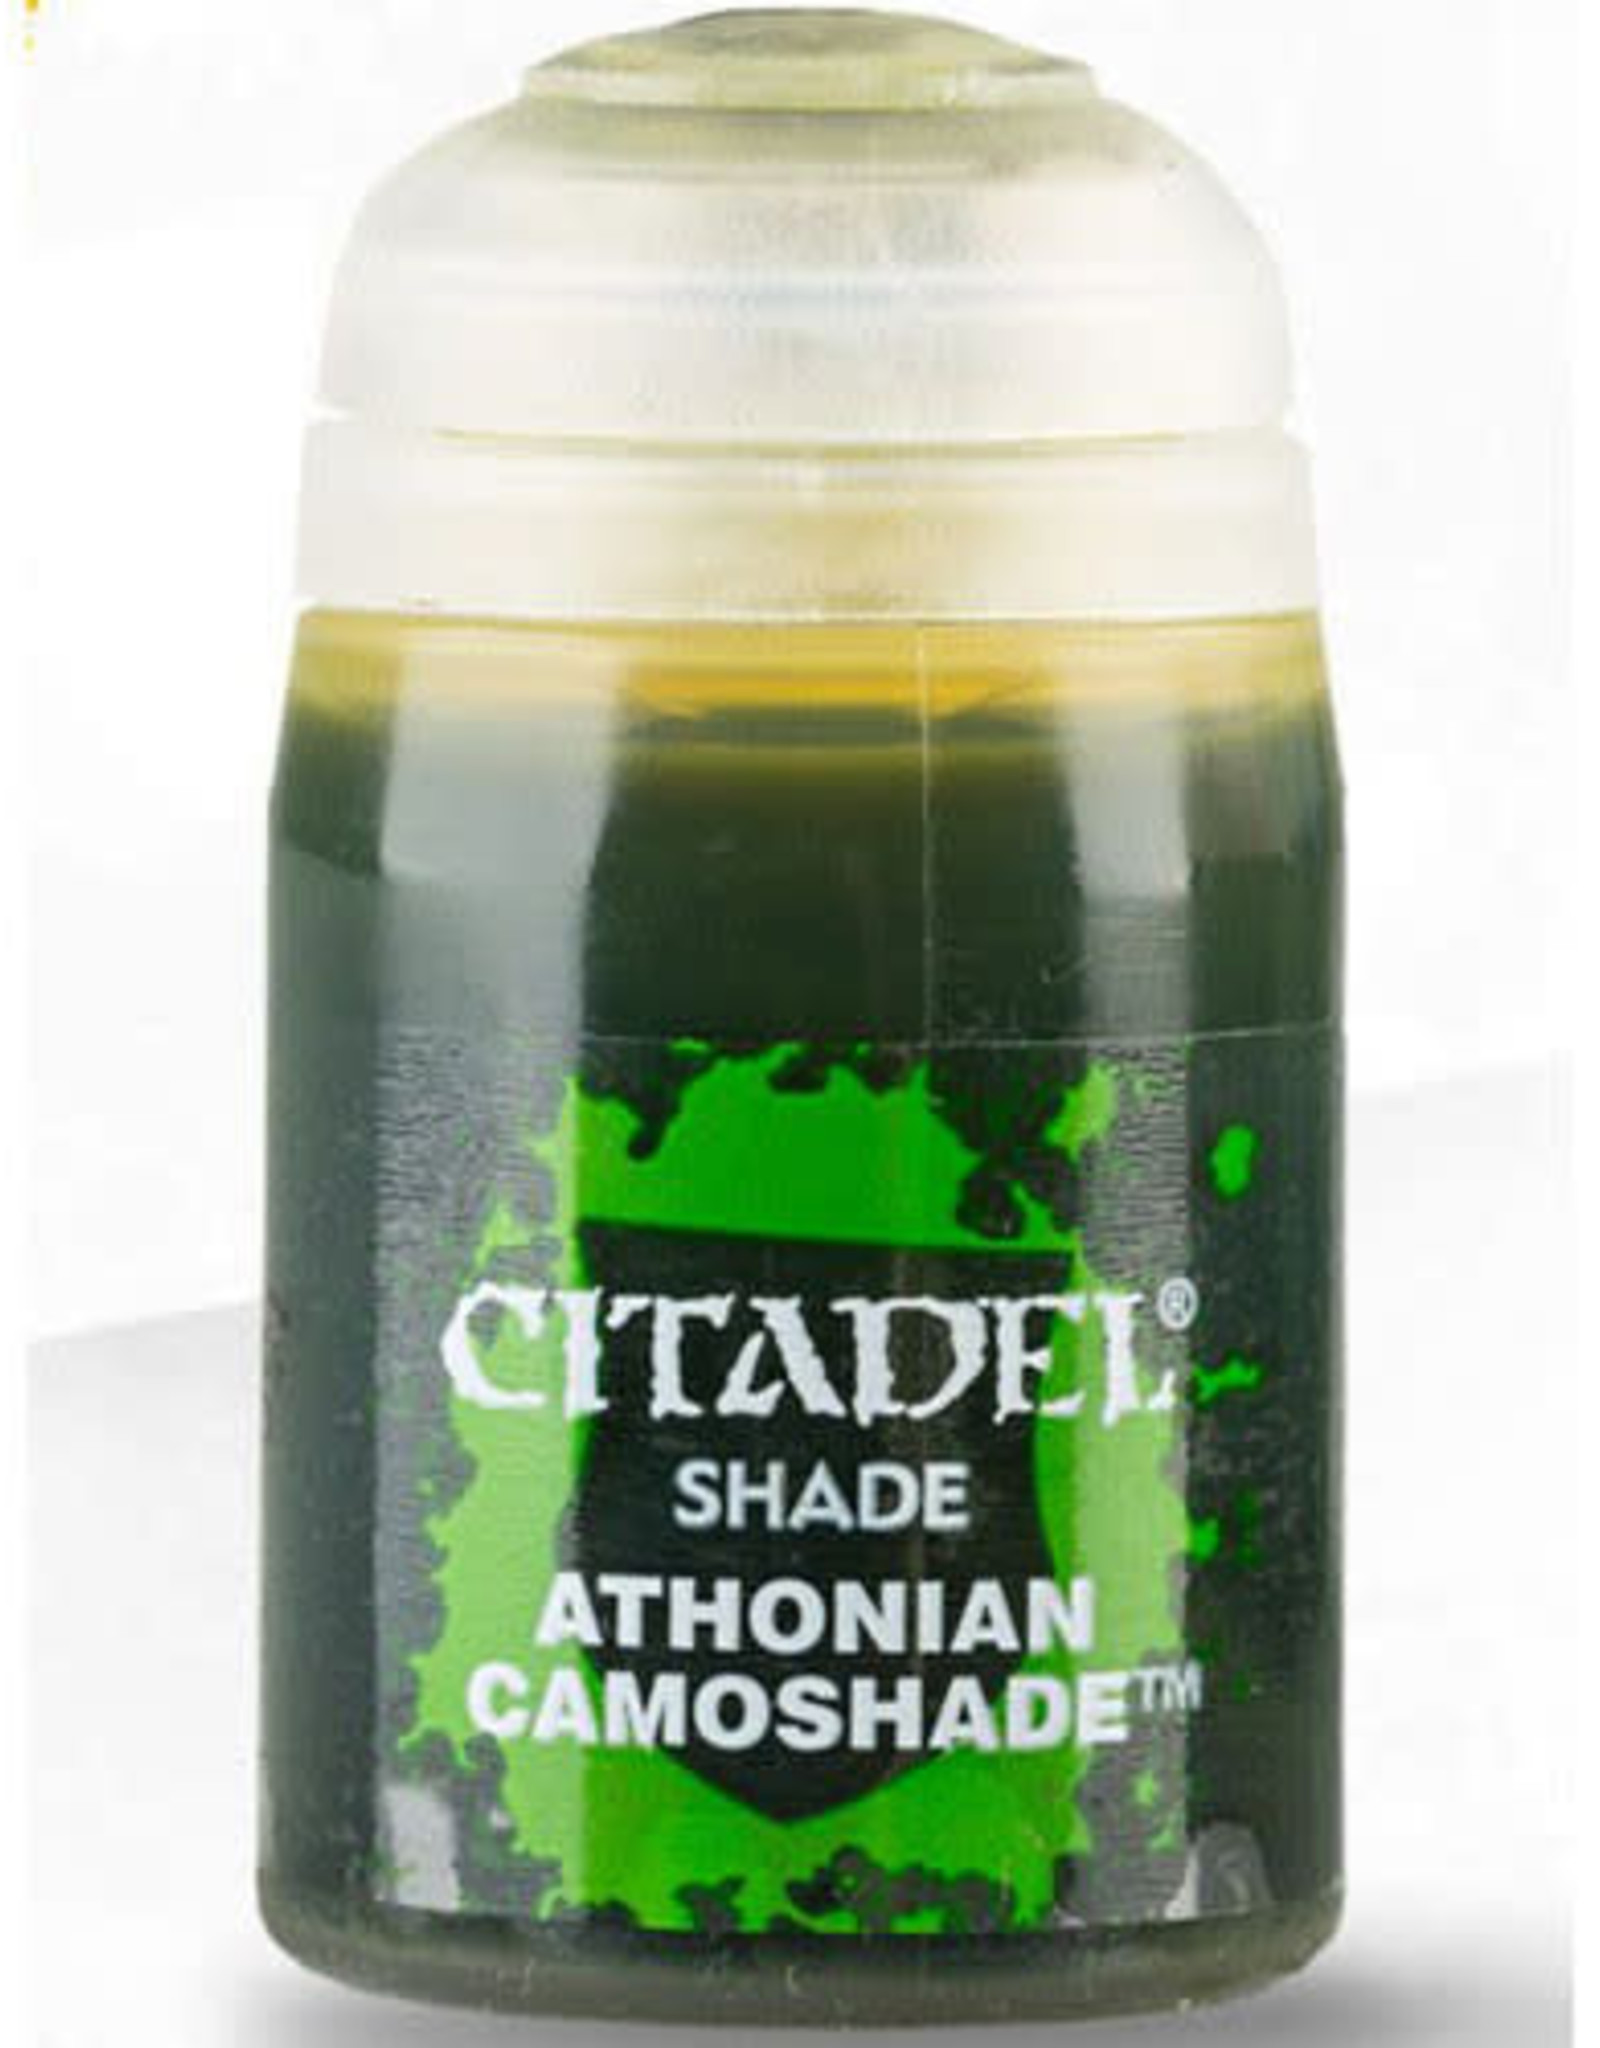 Games Workshop Citadel Paint: Shade - Athonian Camoshade 24ml